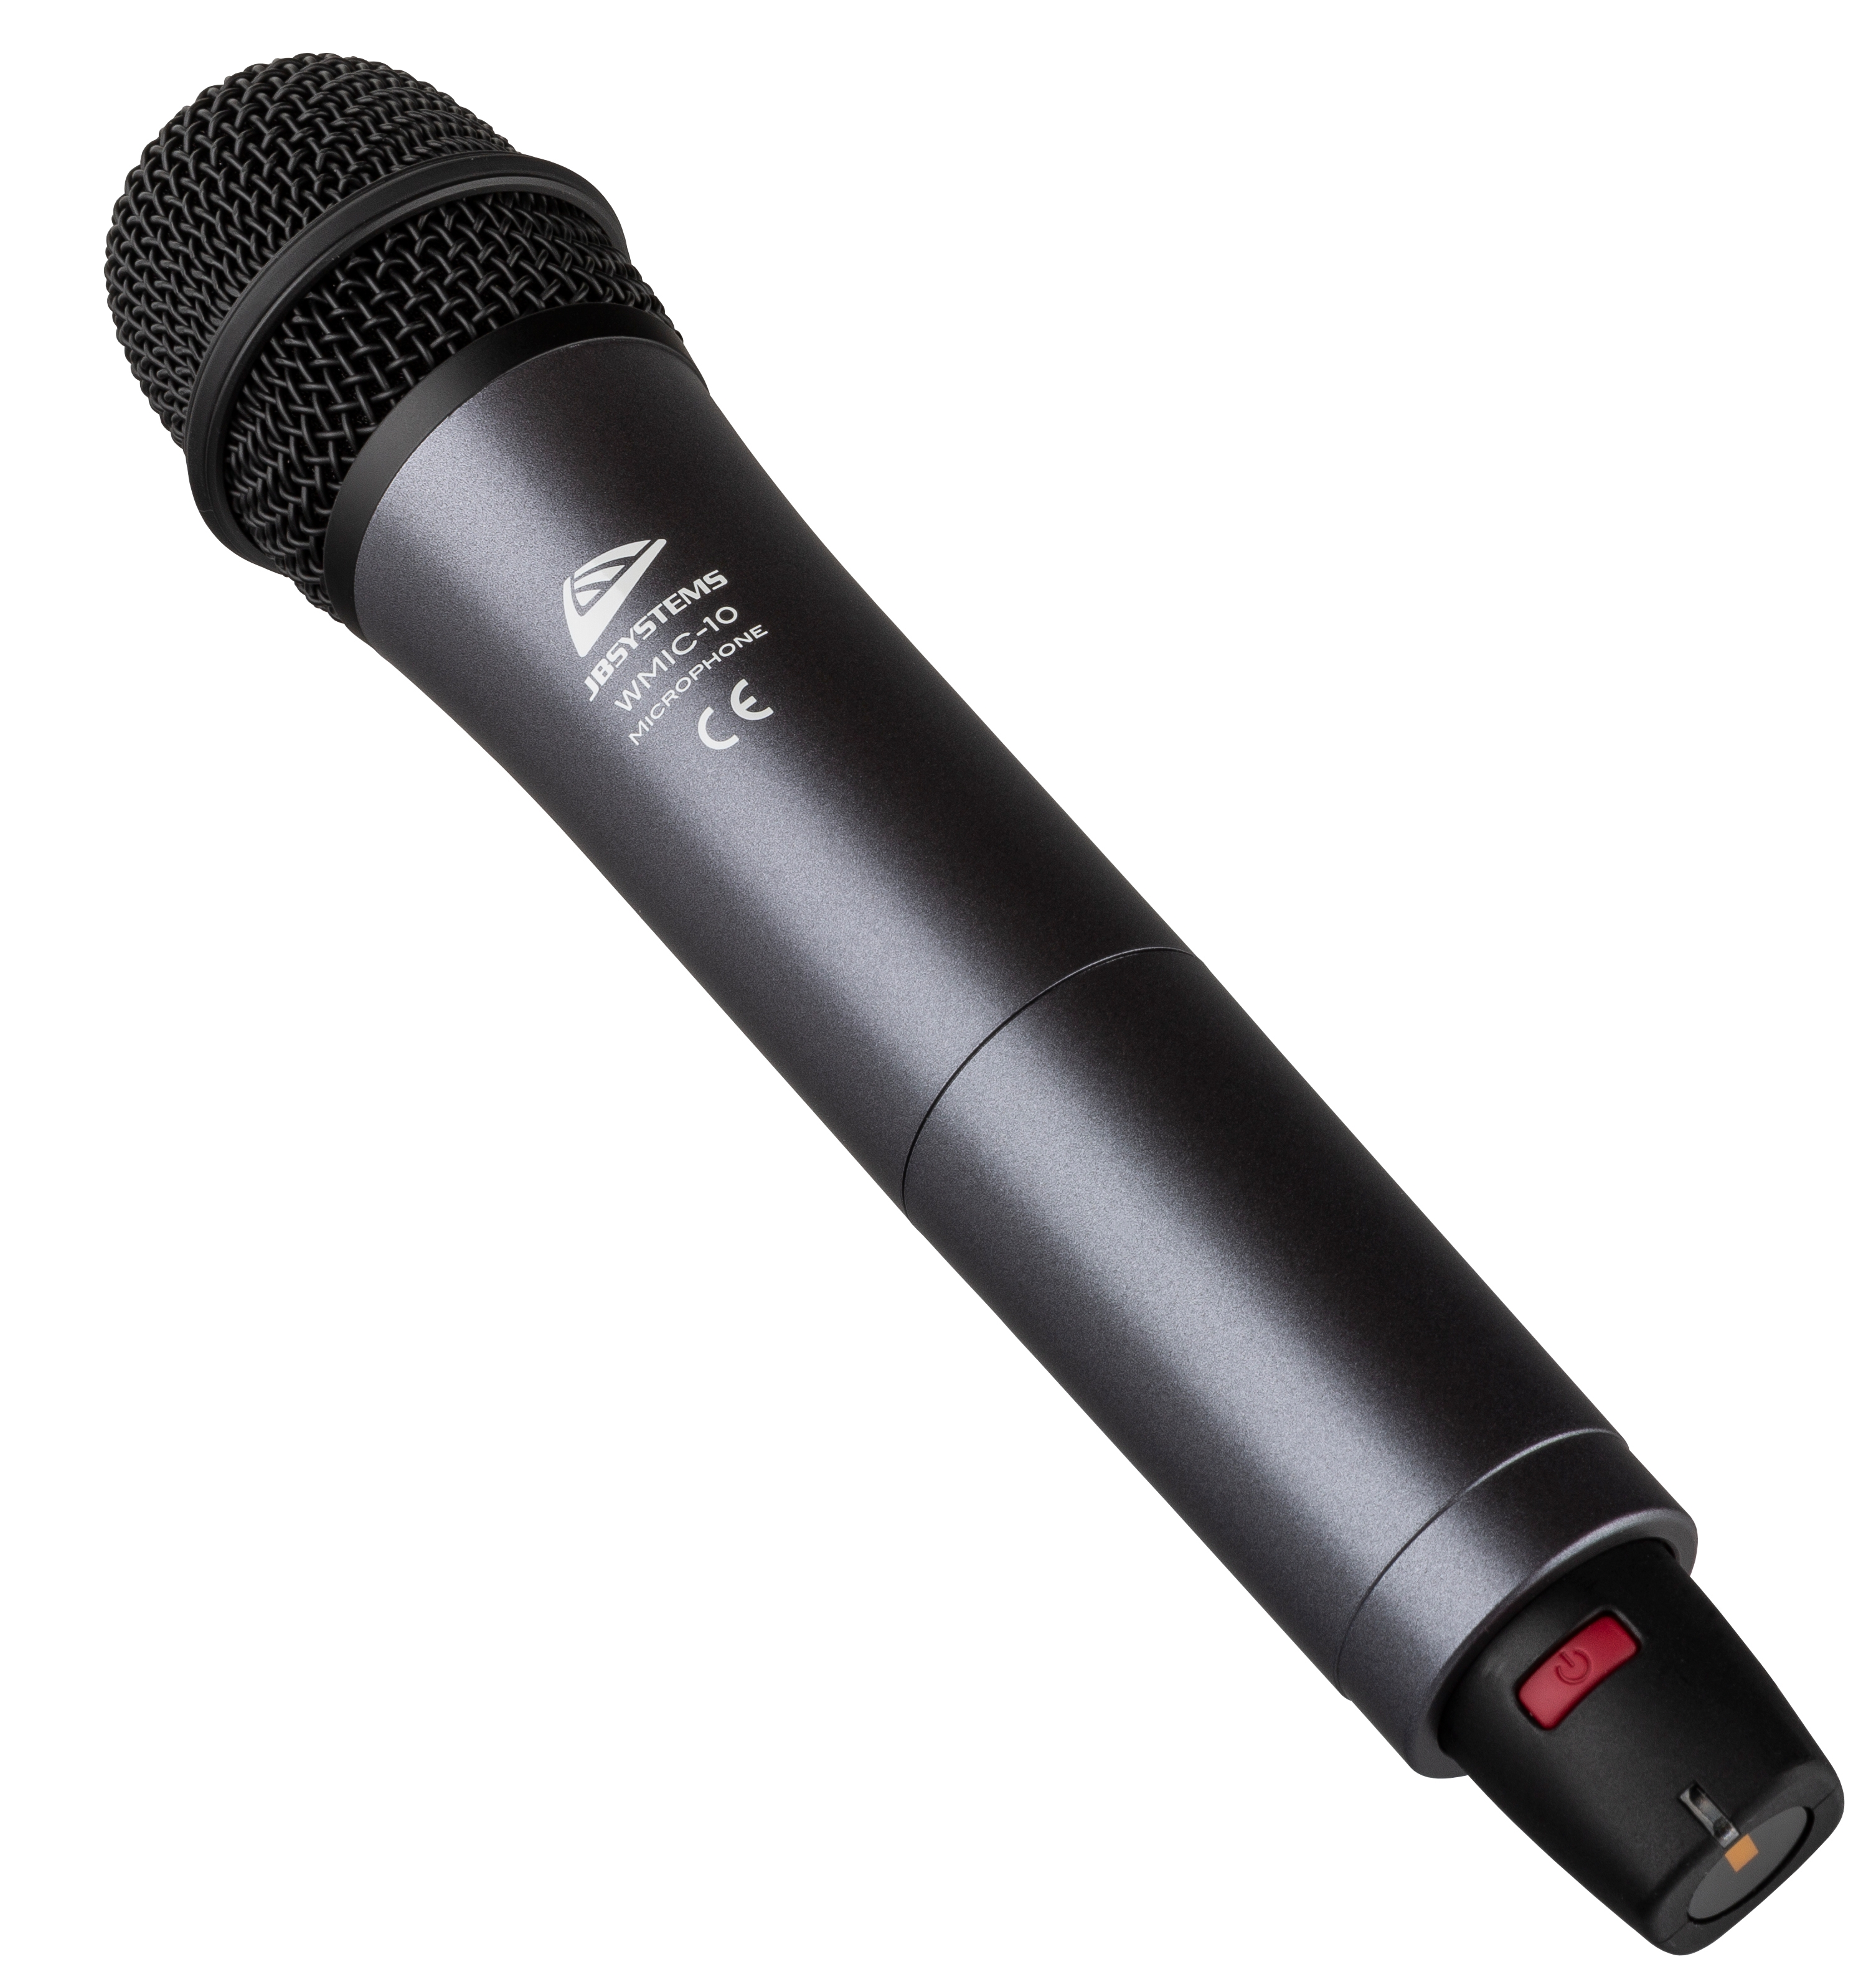 Optional wireless microphone